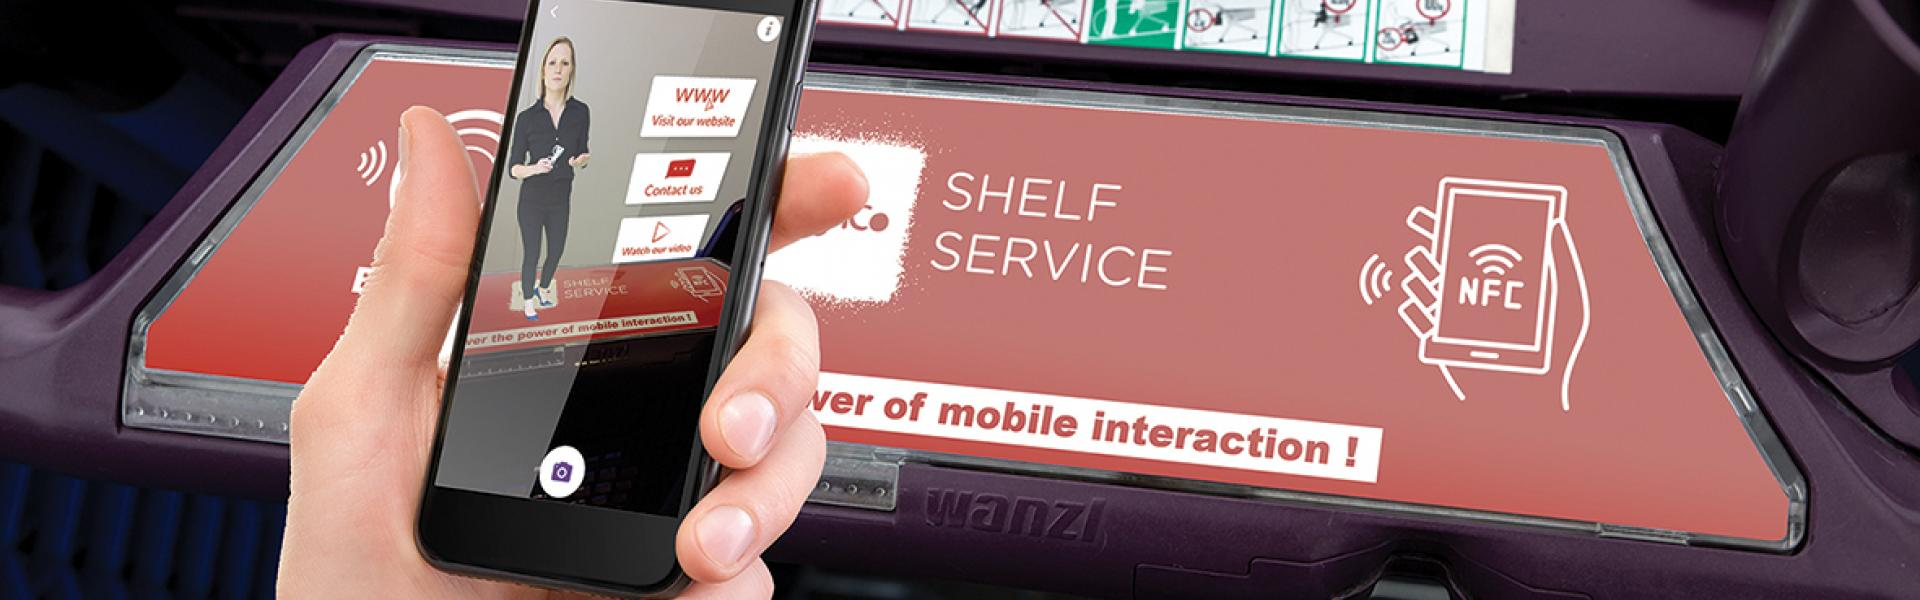 in-store digital solutions, nfc, in-store media